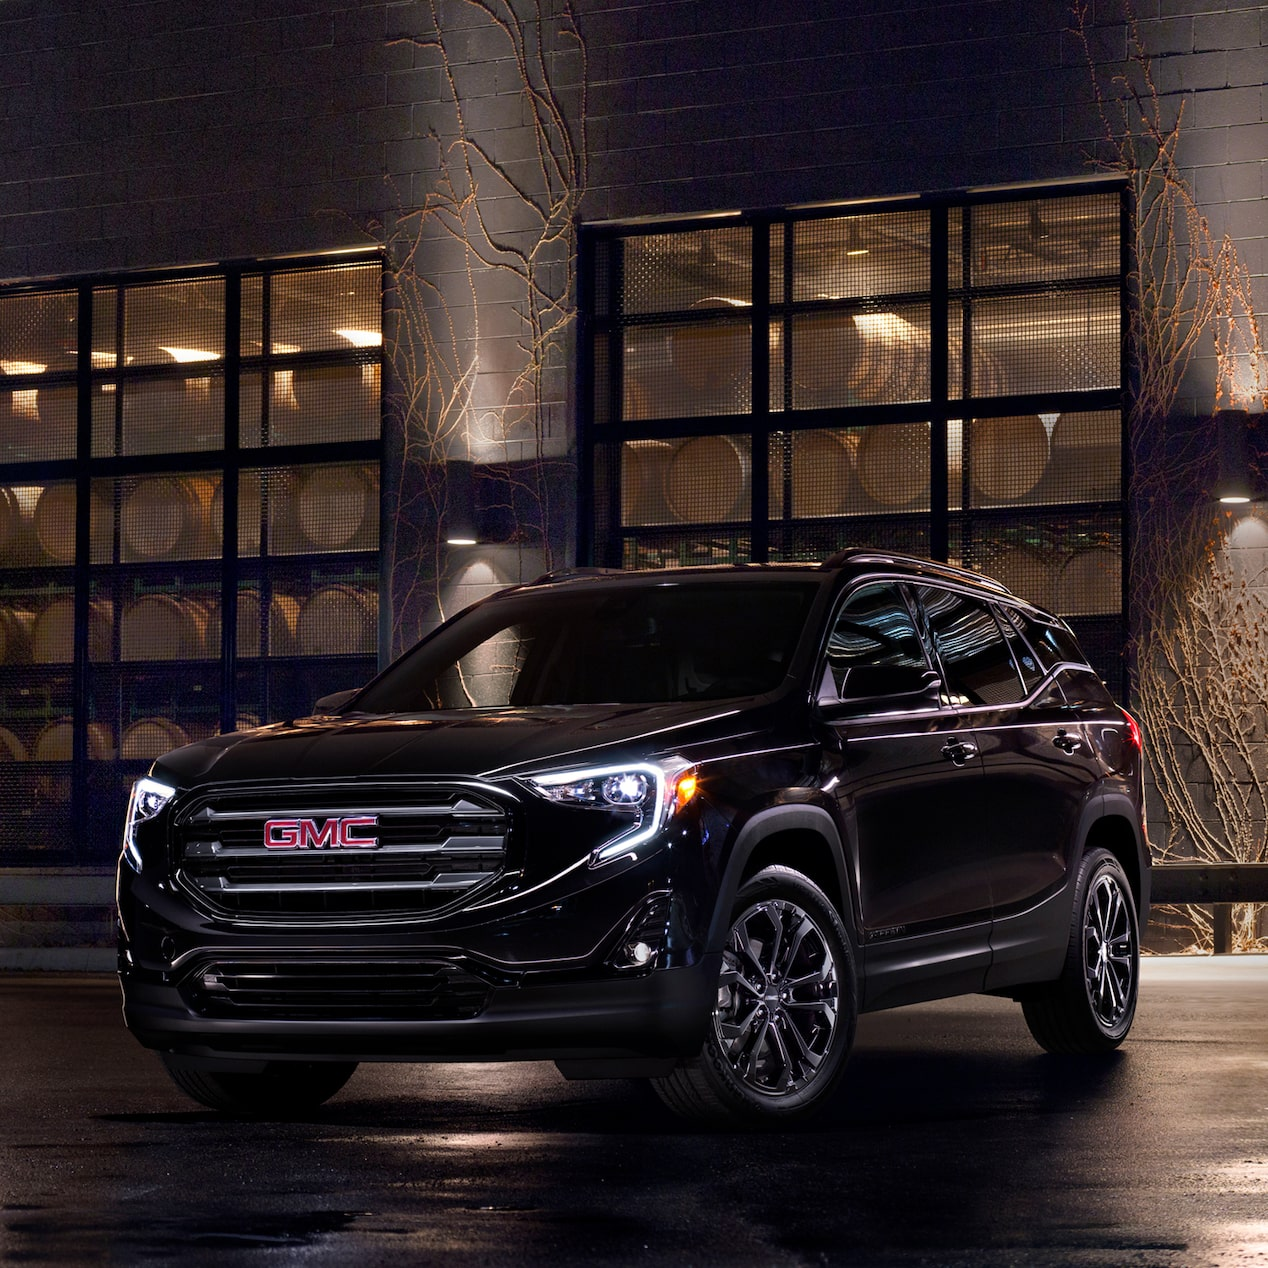 2019 GMC Terrain and Acadia.